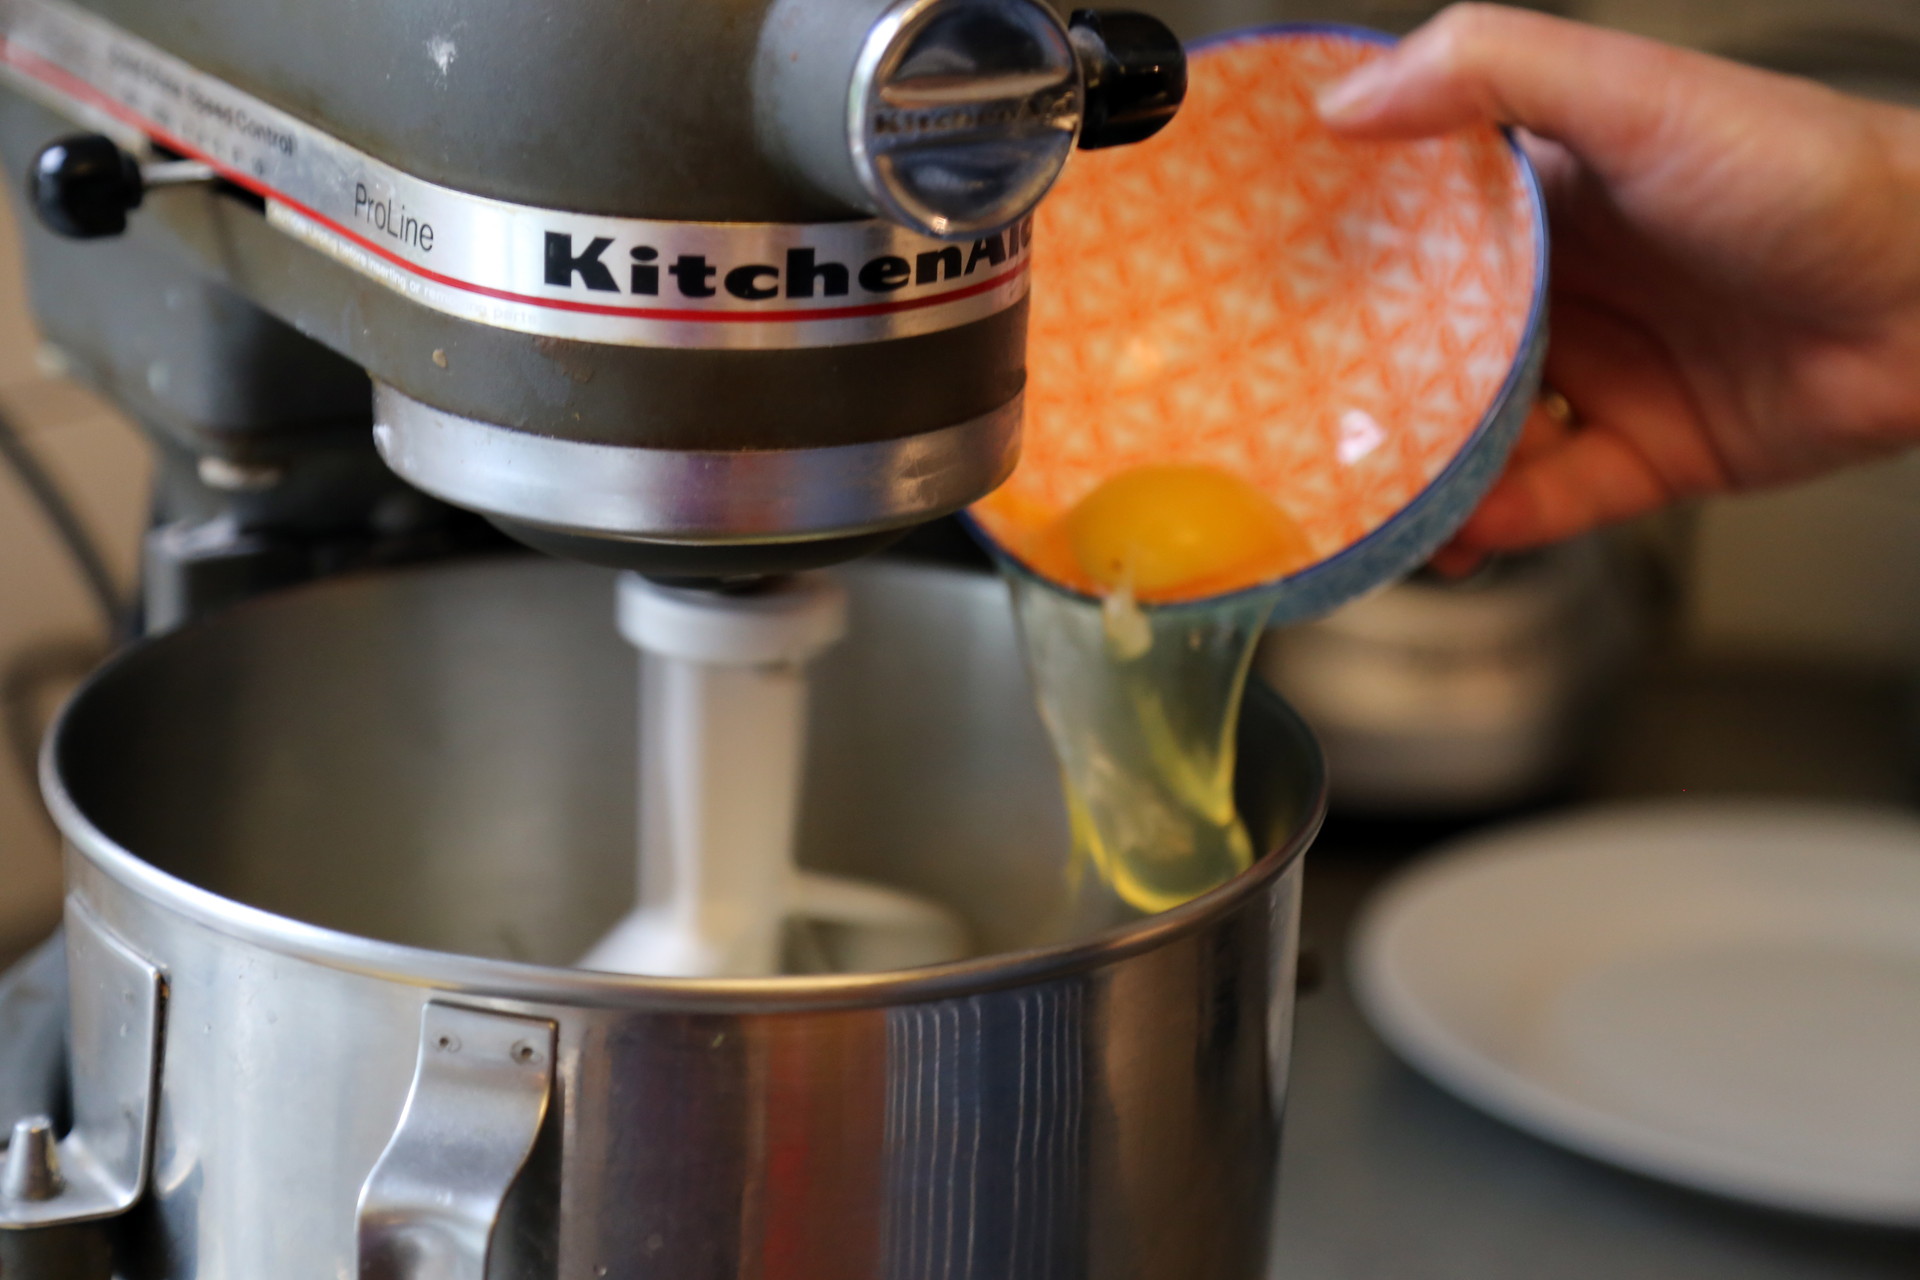 In the bowl of a stand mixer fitted with the paddle attachment, beat the butter, sugar, and lemon zest until smooth, about 2 minutes. Scrape down the sides of the bowl and add the eggs one at a time, beating well after each addition, until the egg is fully incorporated.